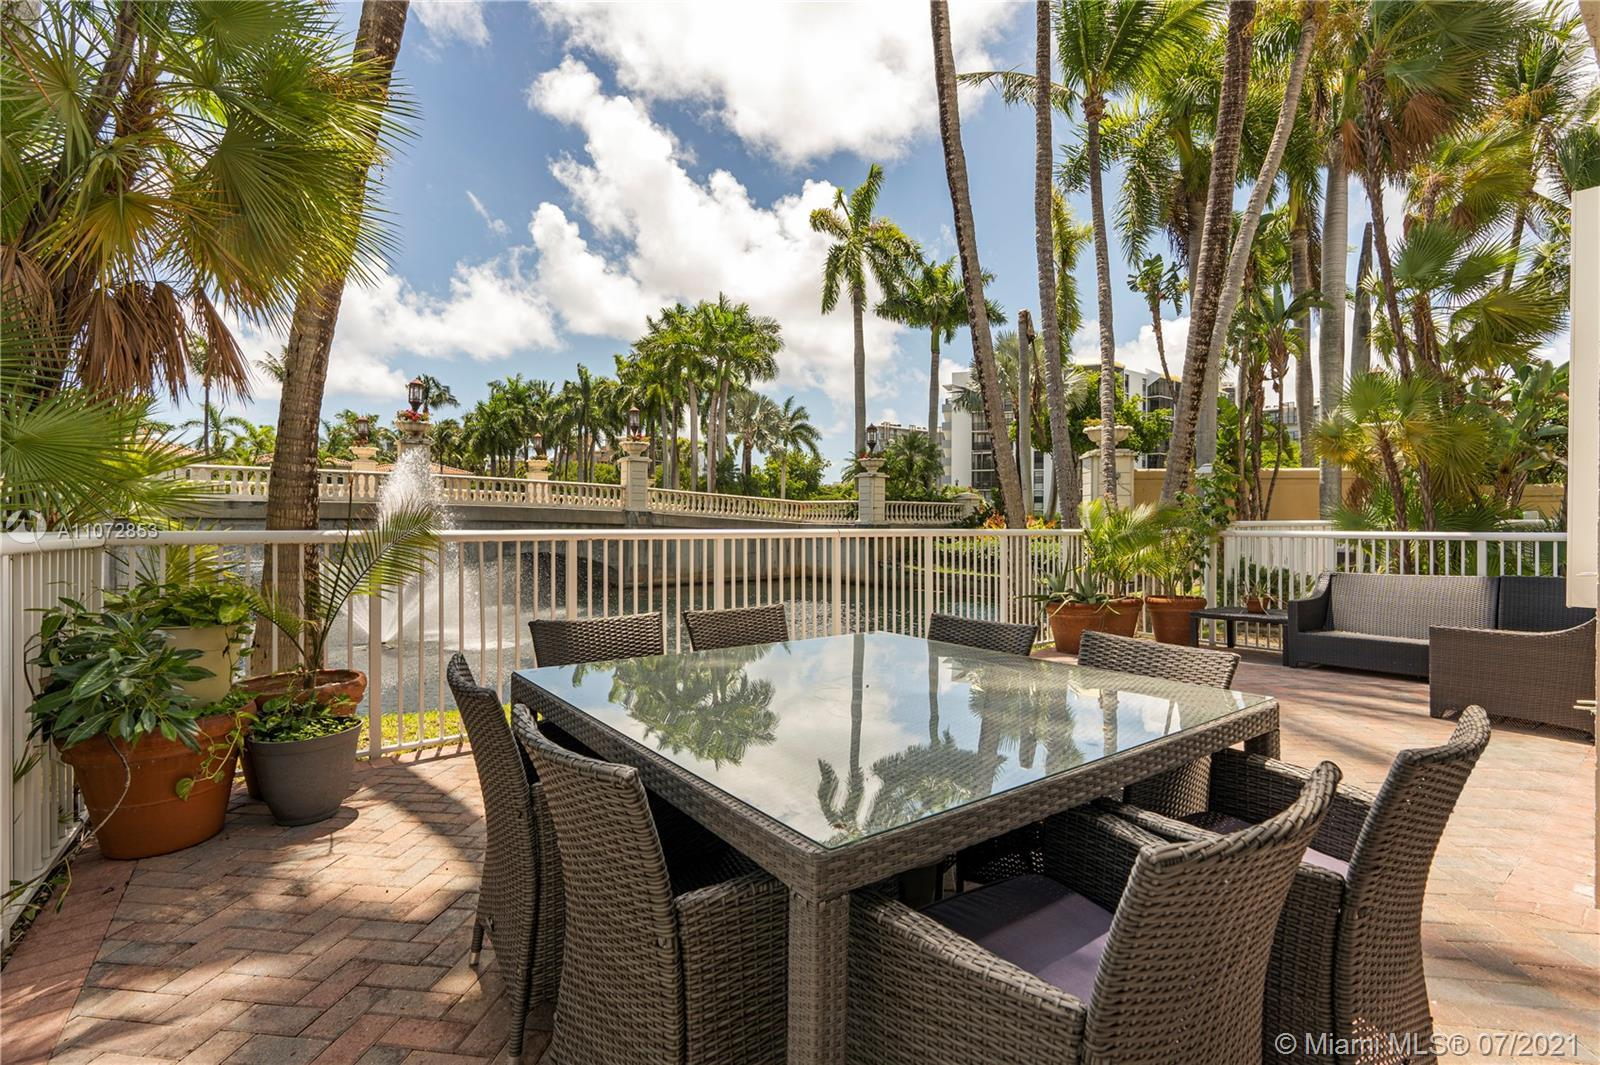 Spacious and bright, natural light floods this 4BD 3.5BA home located in the desirable Aventura Lake